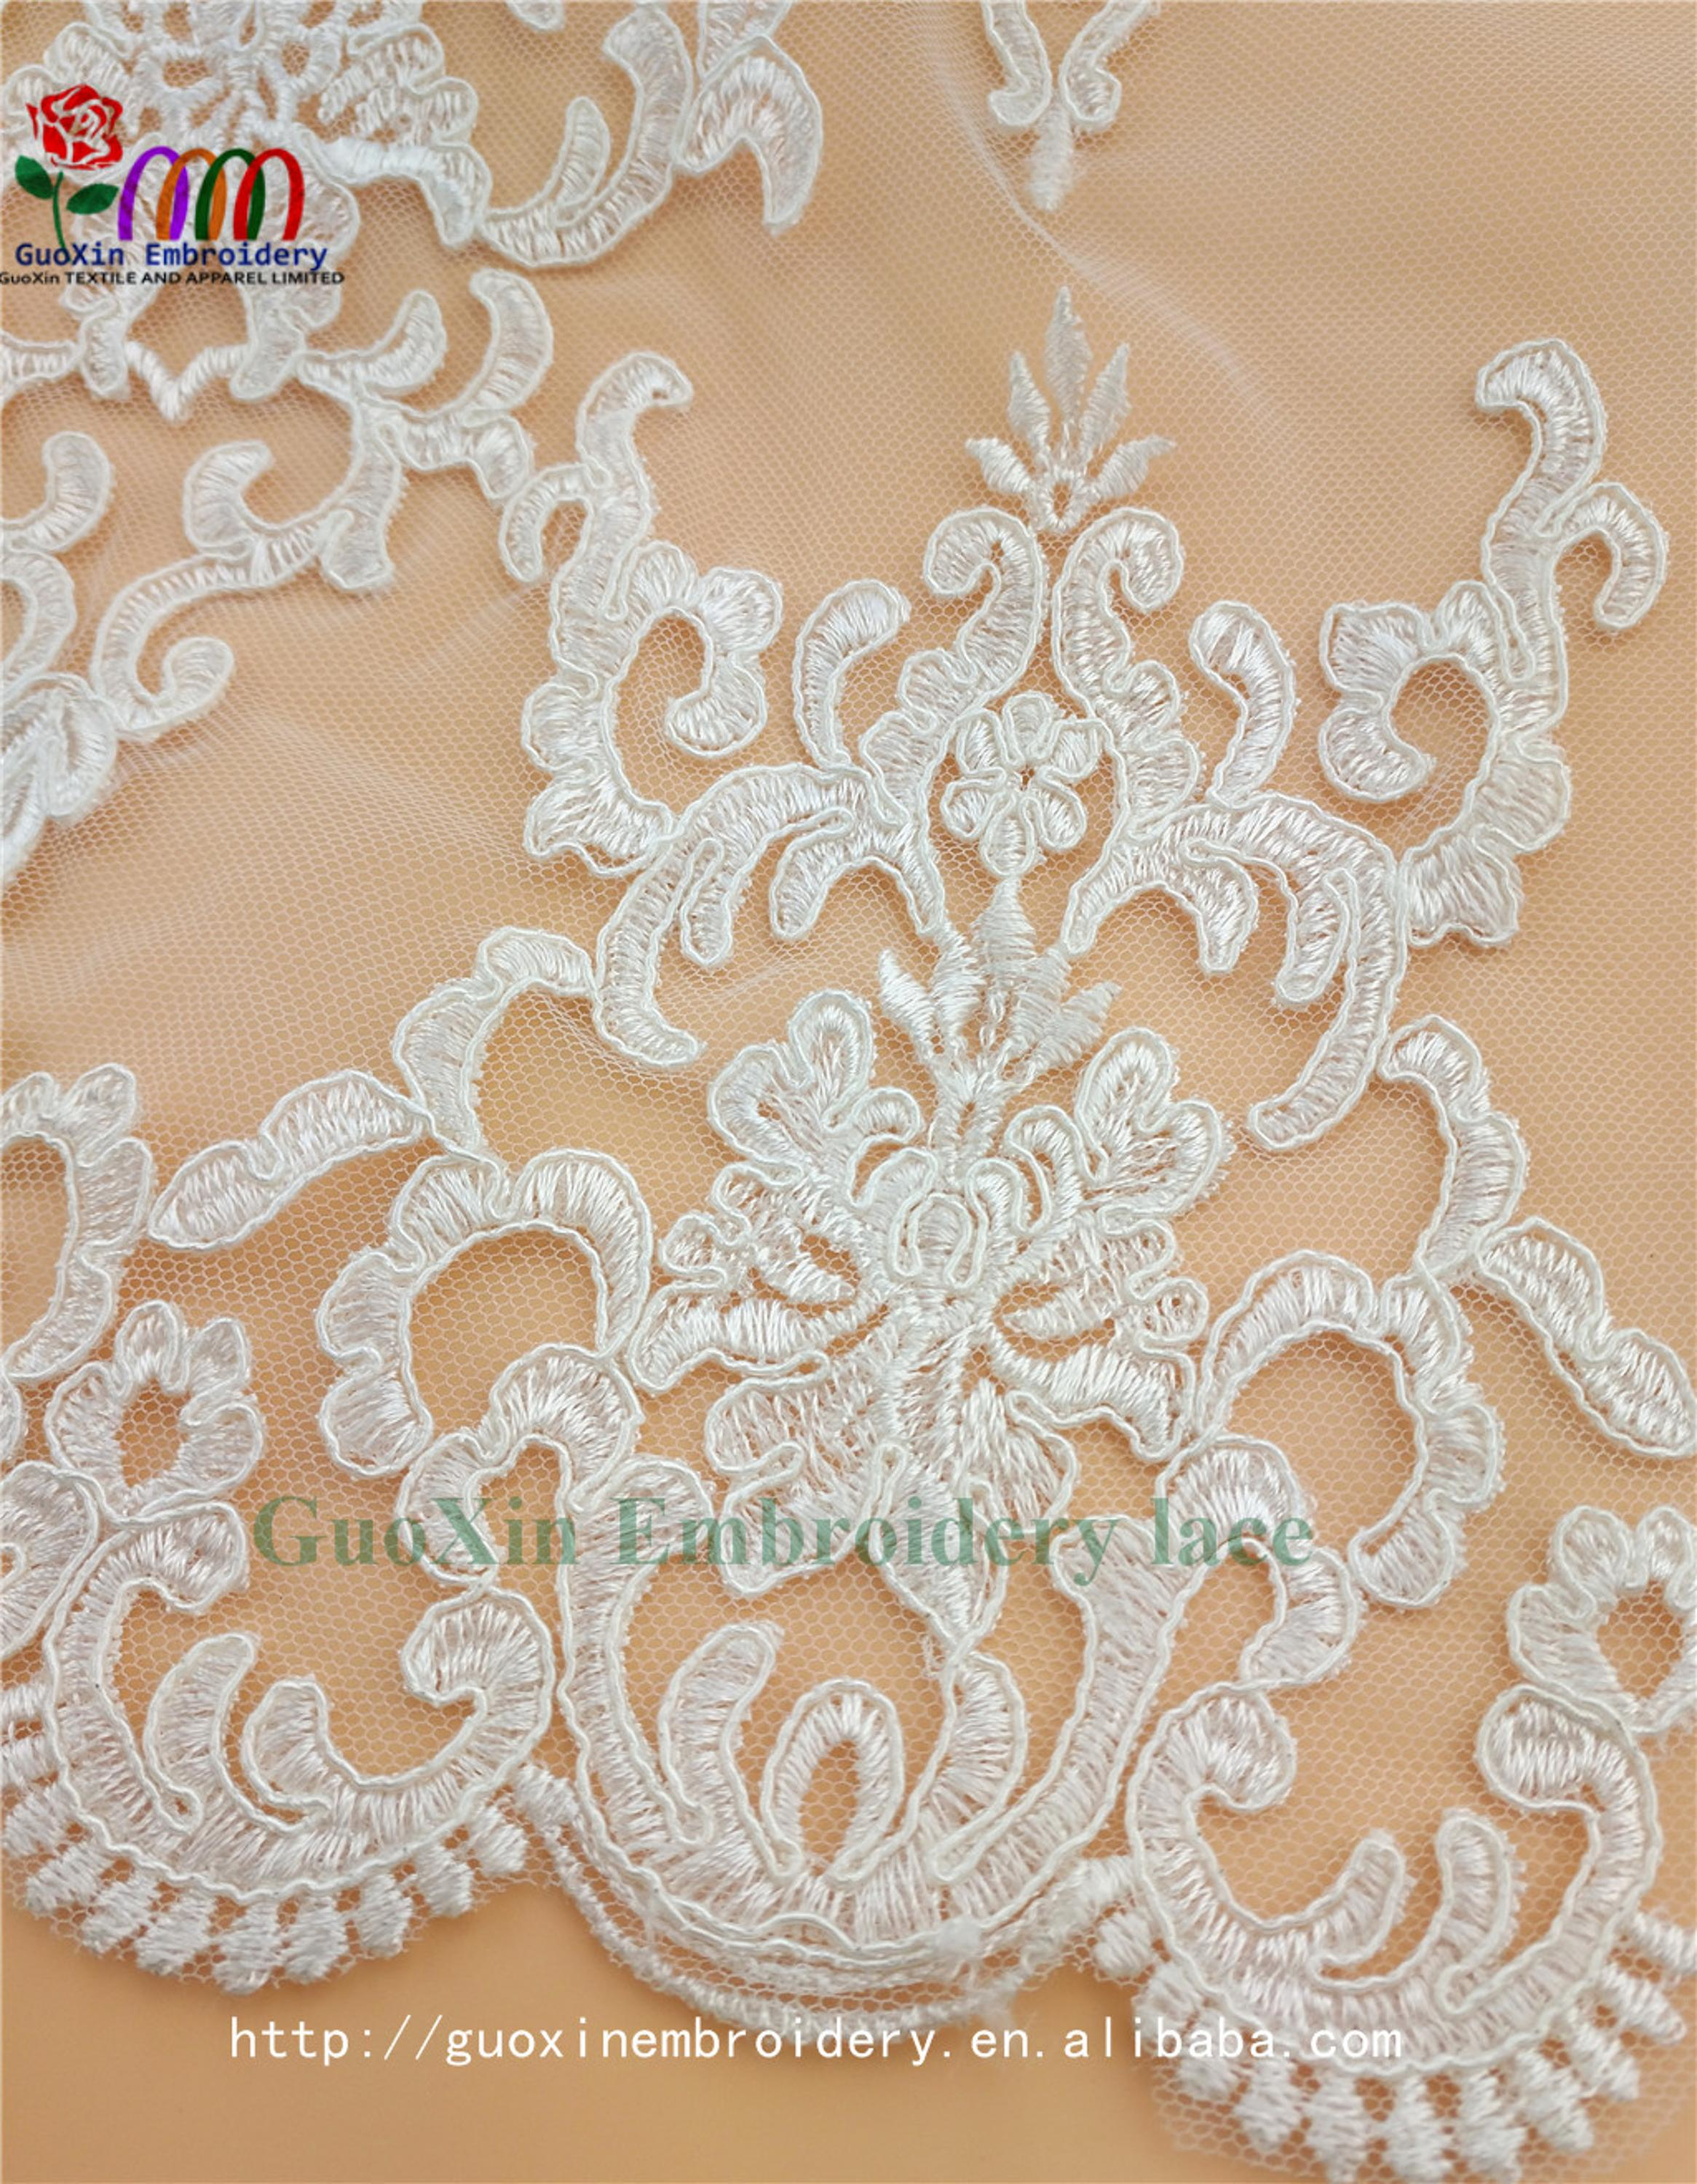 embroidery tulle manufacture wholesale wedding veil ivory lace fabric with cording